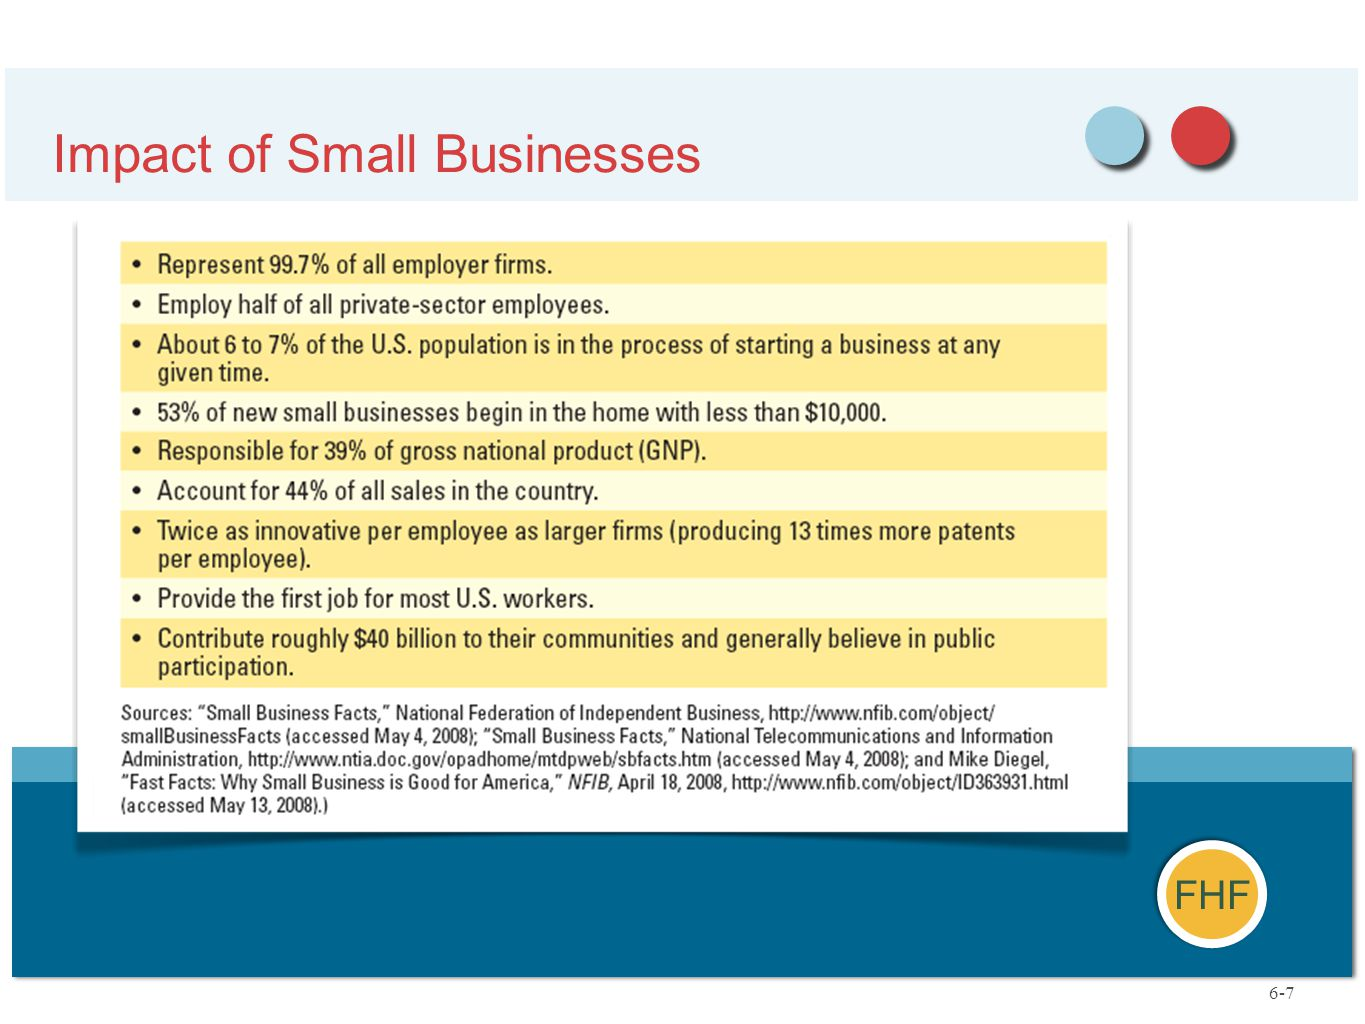 FHF Impact of Small Businesses 6-7